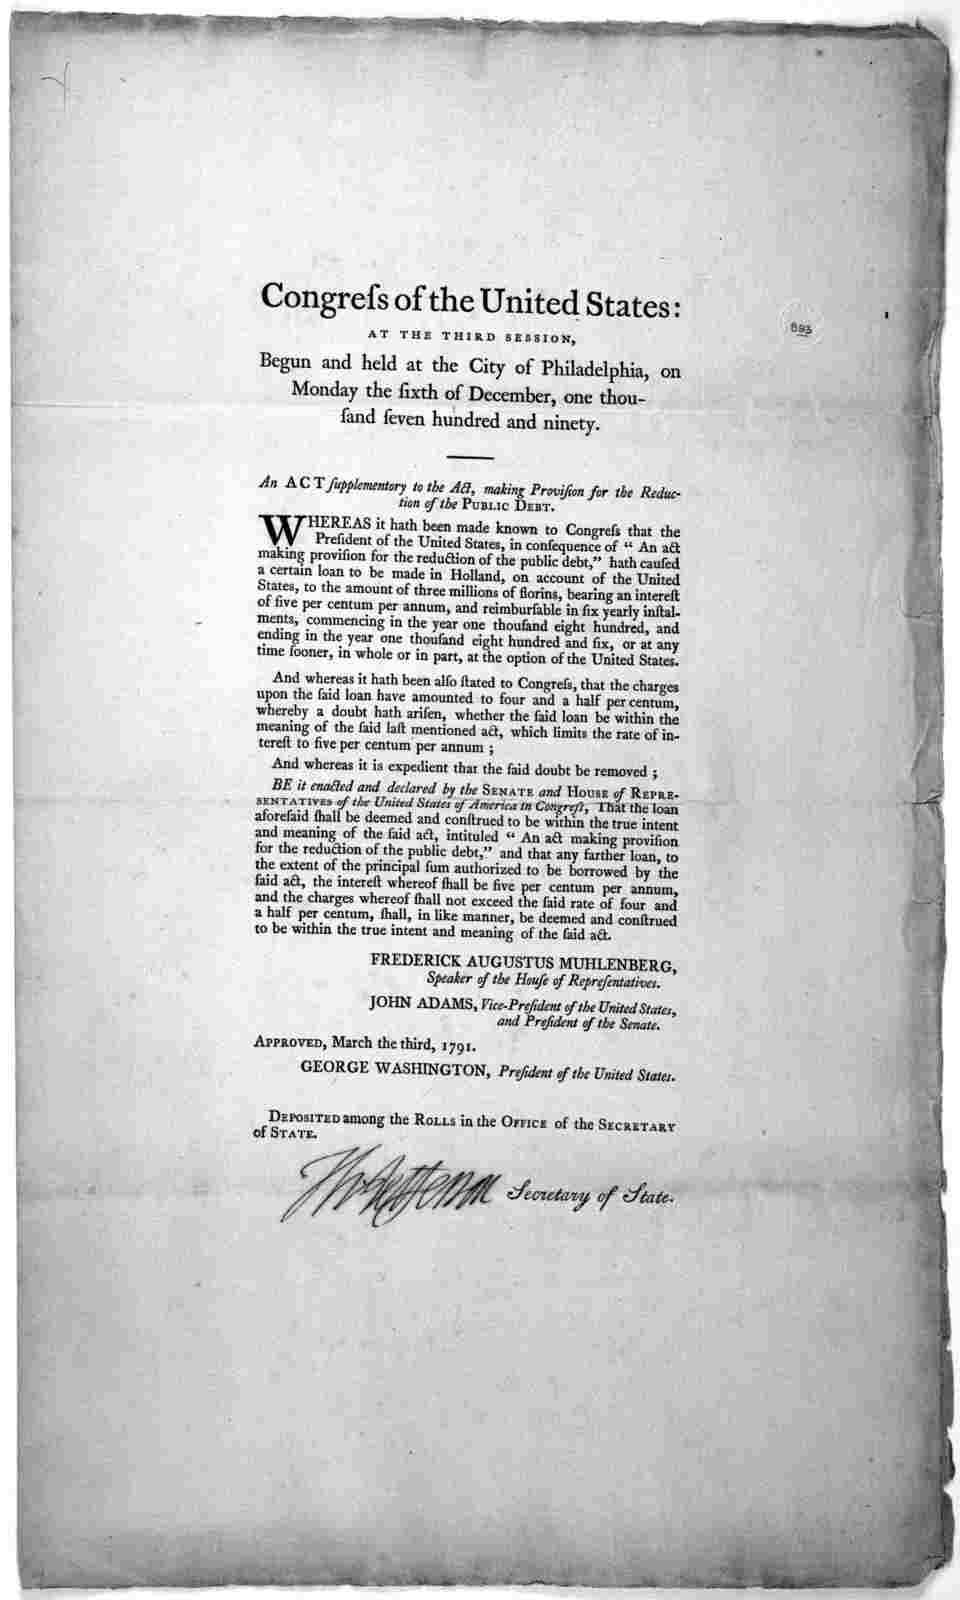 Congress of the United States: at the third session, begun and held at the City of Philadelphia, on Monday the sixth of December, one thousand seven hundred and ninety. An act supplementory to the act, making provision for the reduction of the p